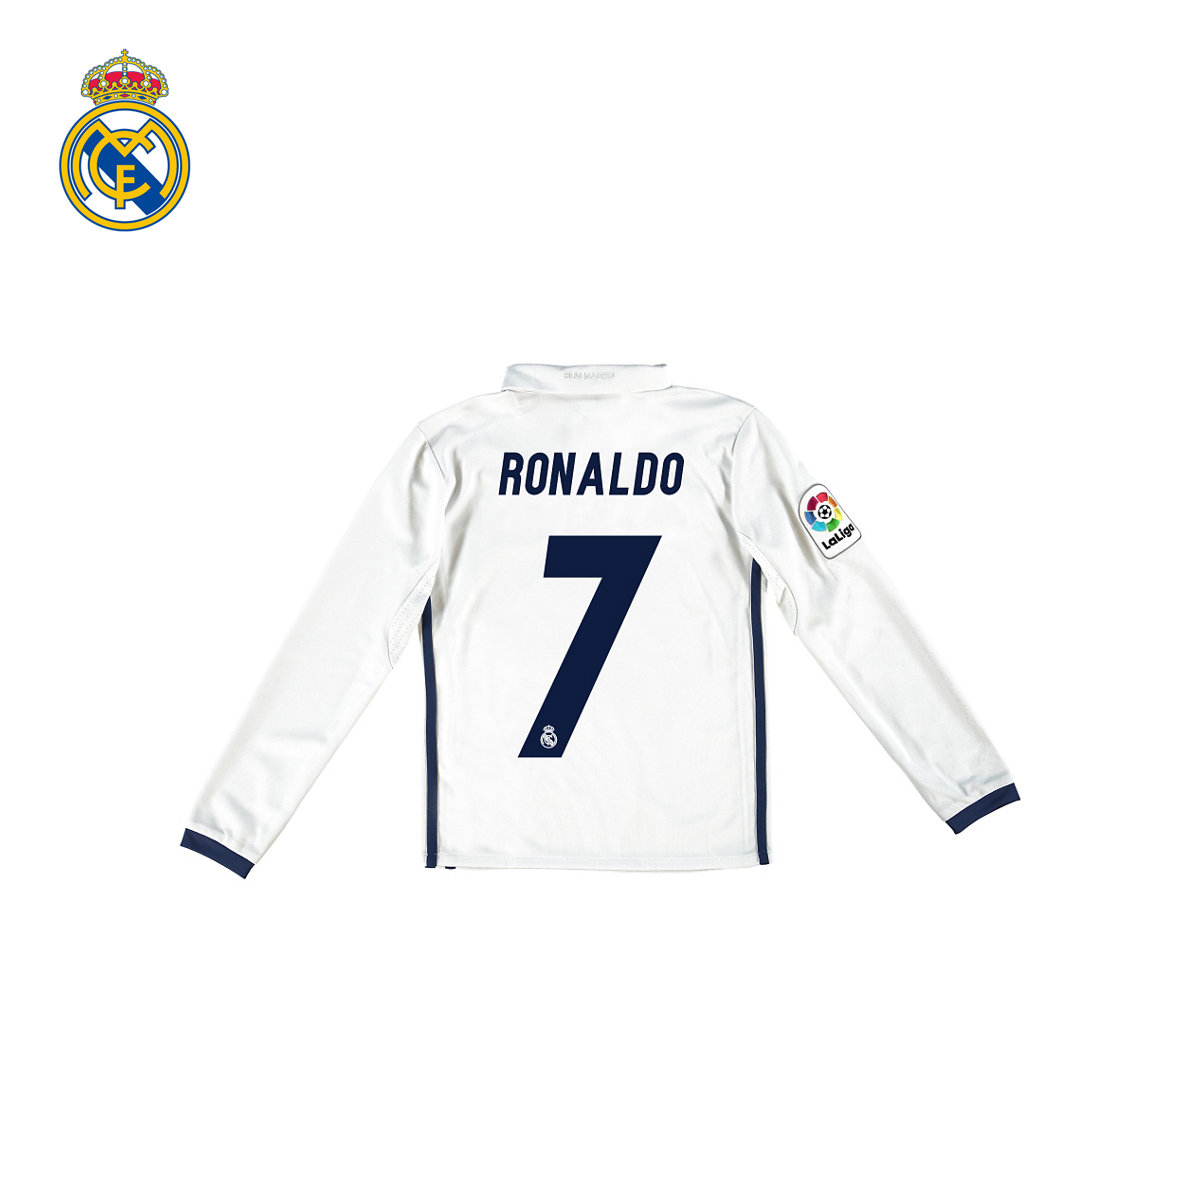 [Youth] real madrid real madrid c lo ronaldo 16/17 season home jersey long sleeve jersey 7